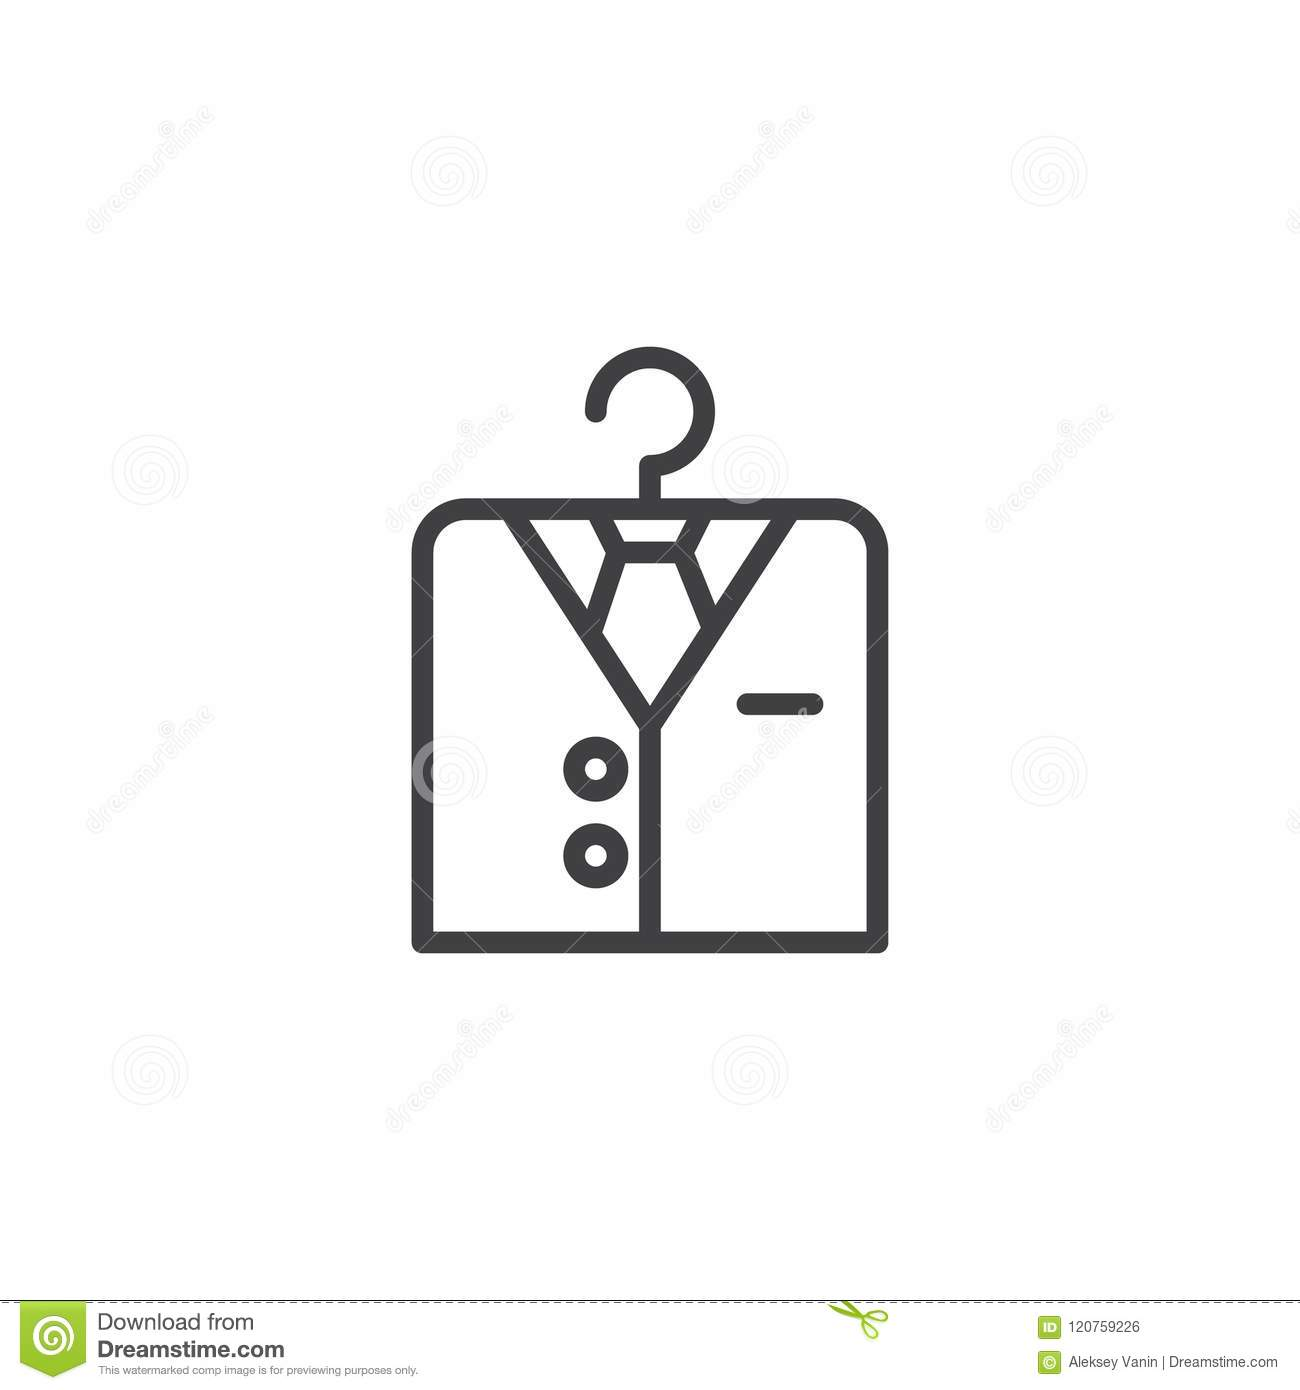 Shirt On Hanger Outline Icon Stock Vector Illustration Of Suit